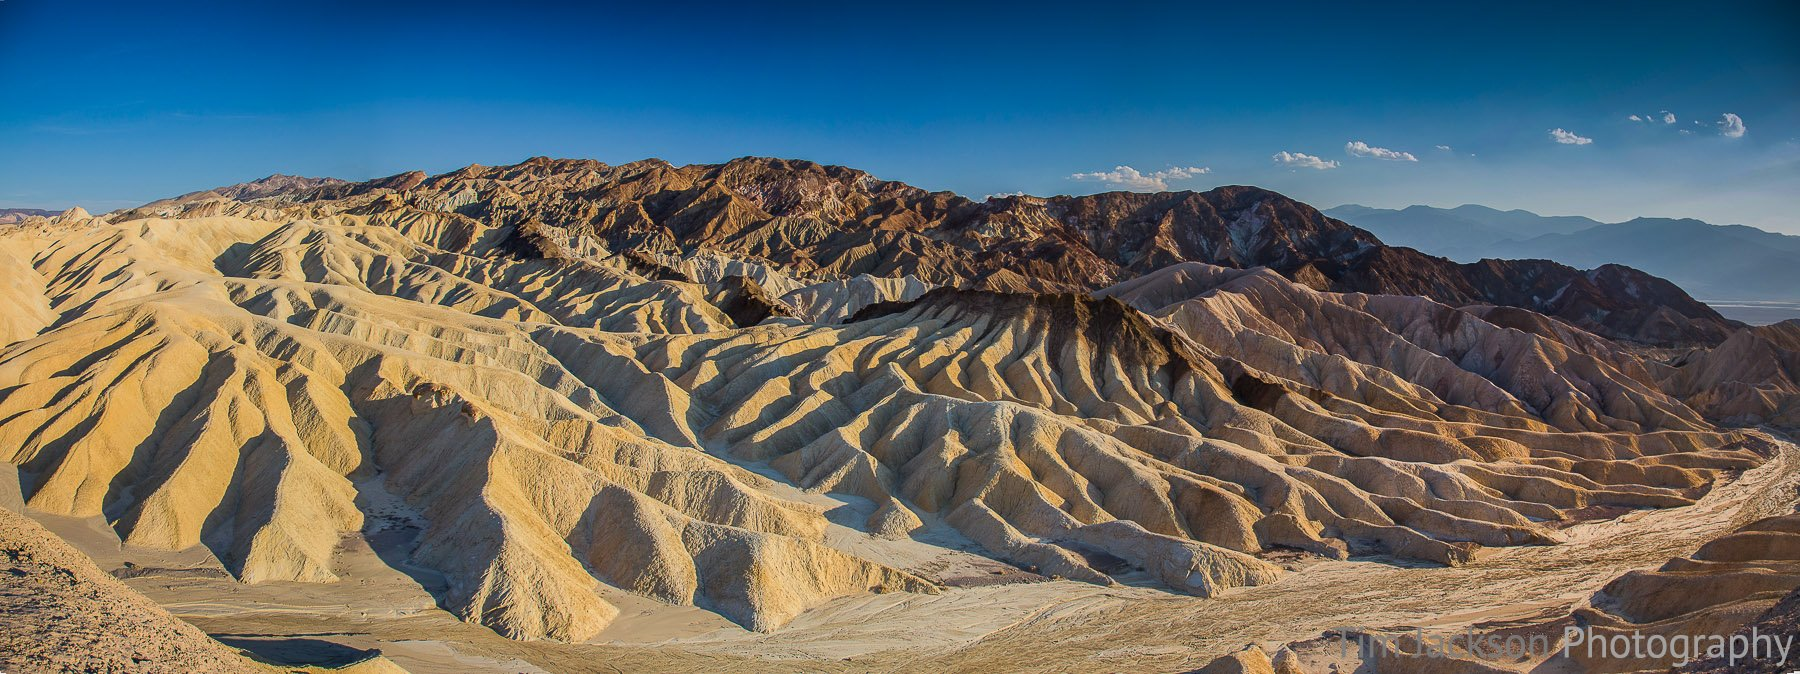 Zabriskie Point Death Valley Panorama Photograph by Tim Jackson